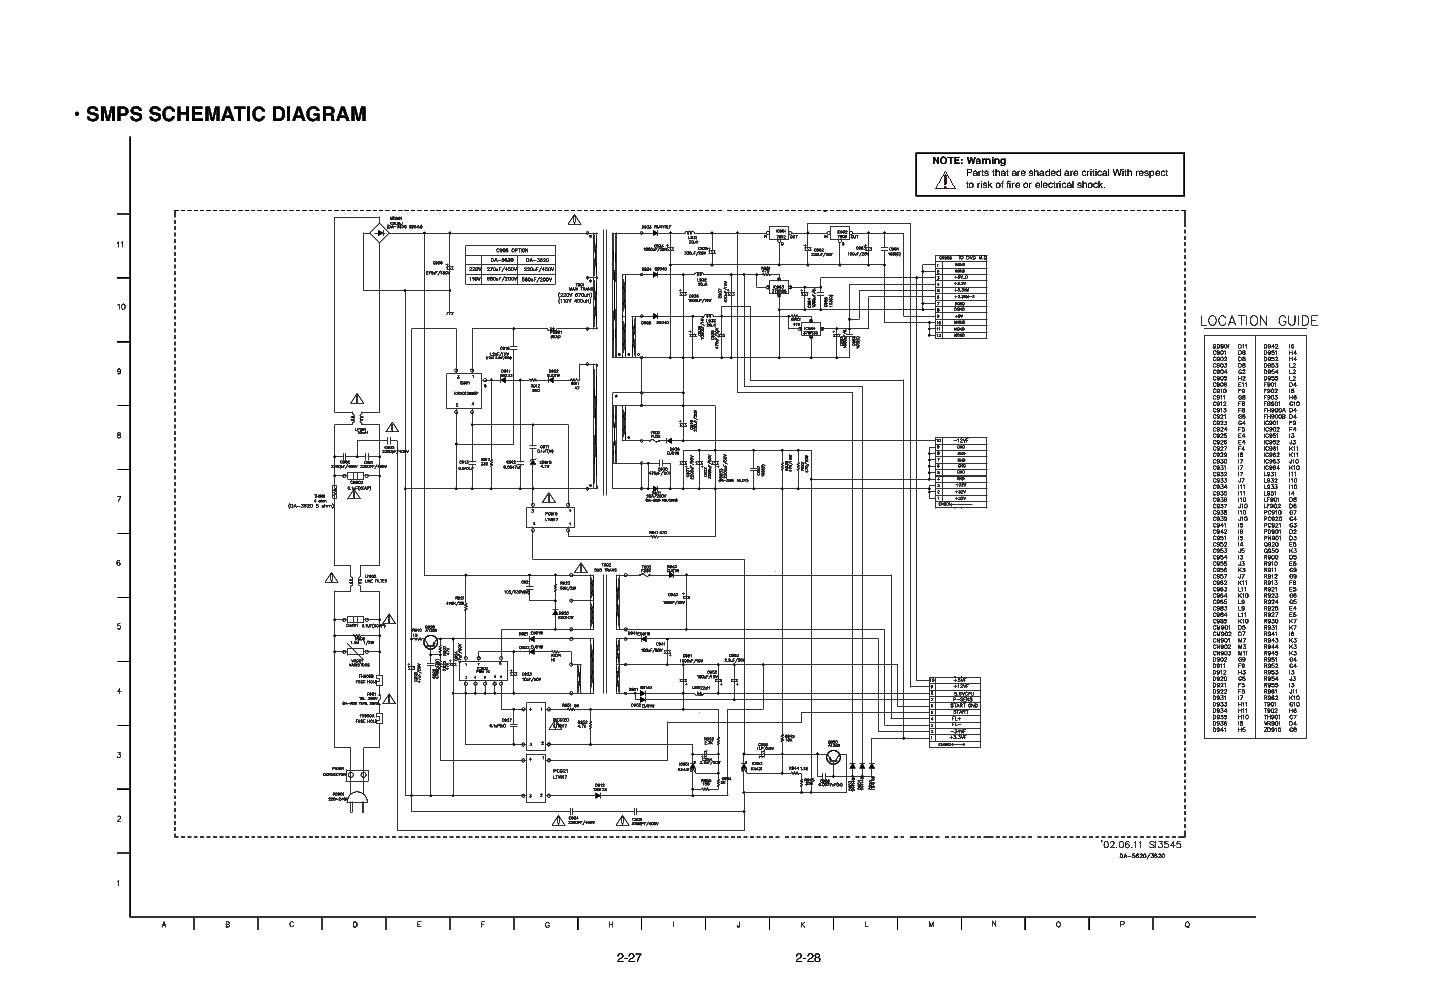 Wonderful Smps Service Manual Ideas - Simple Wiring Diagram Images ...